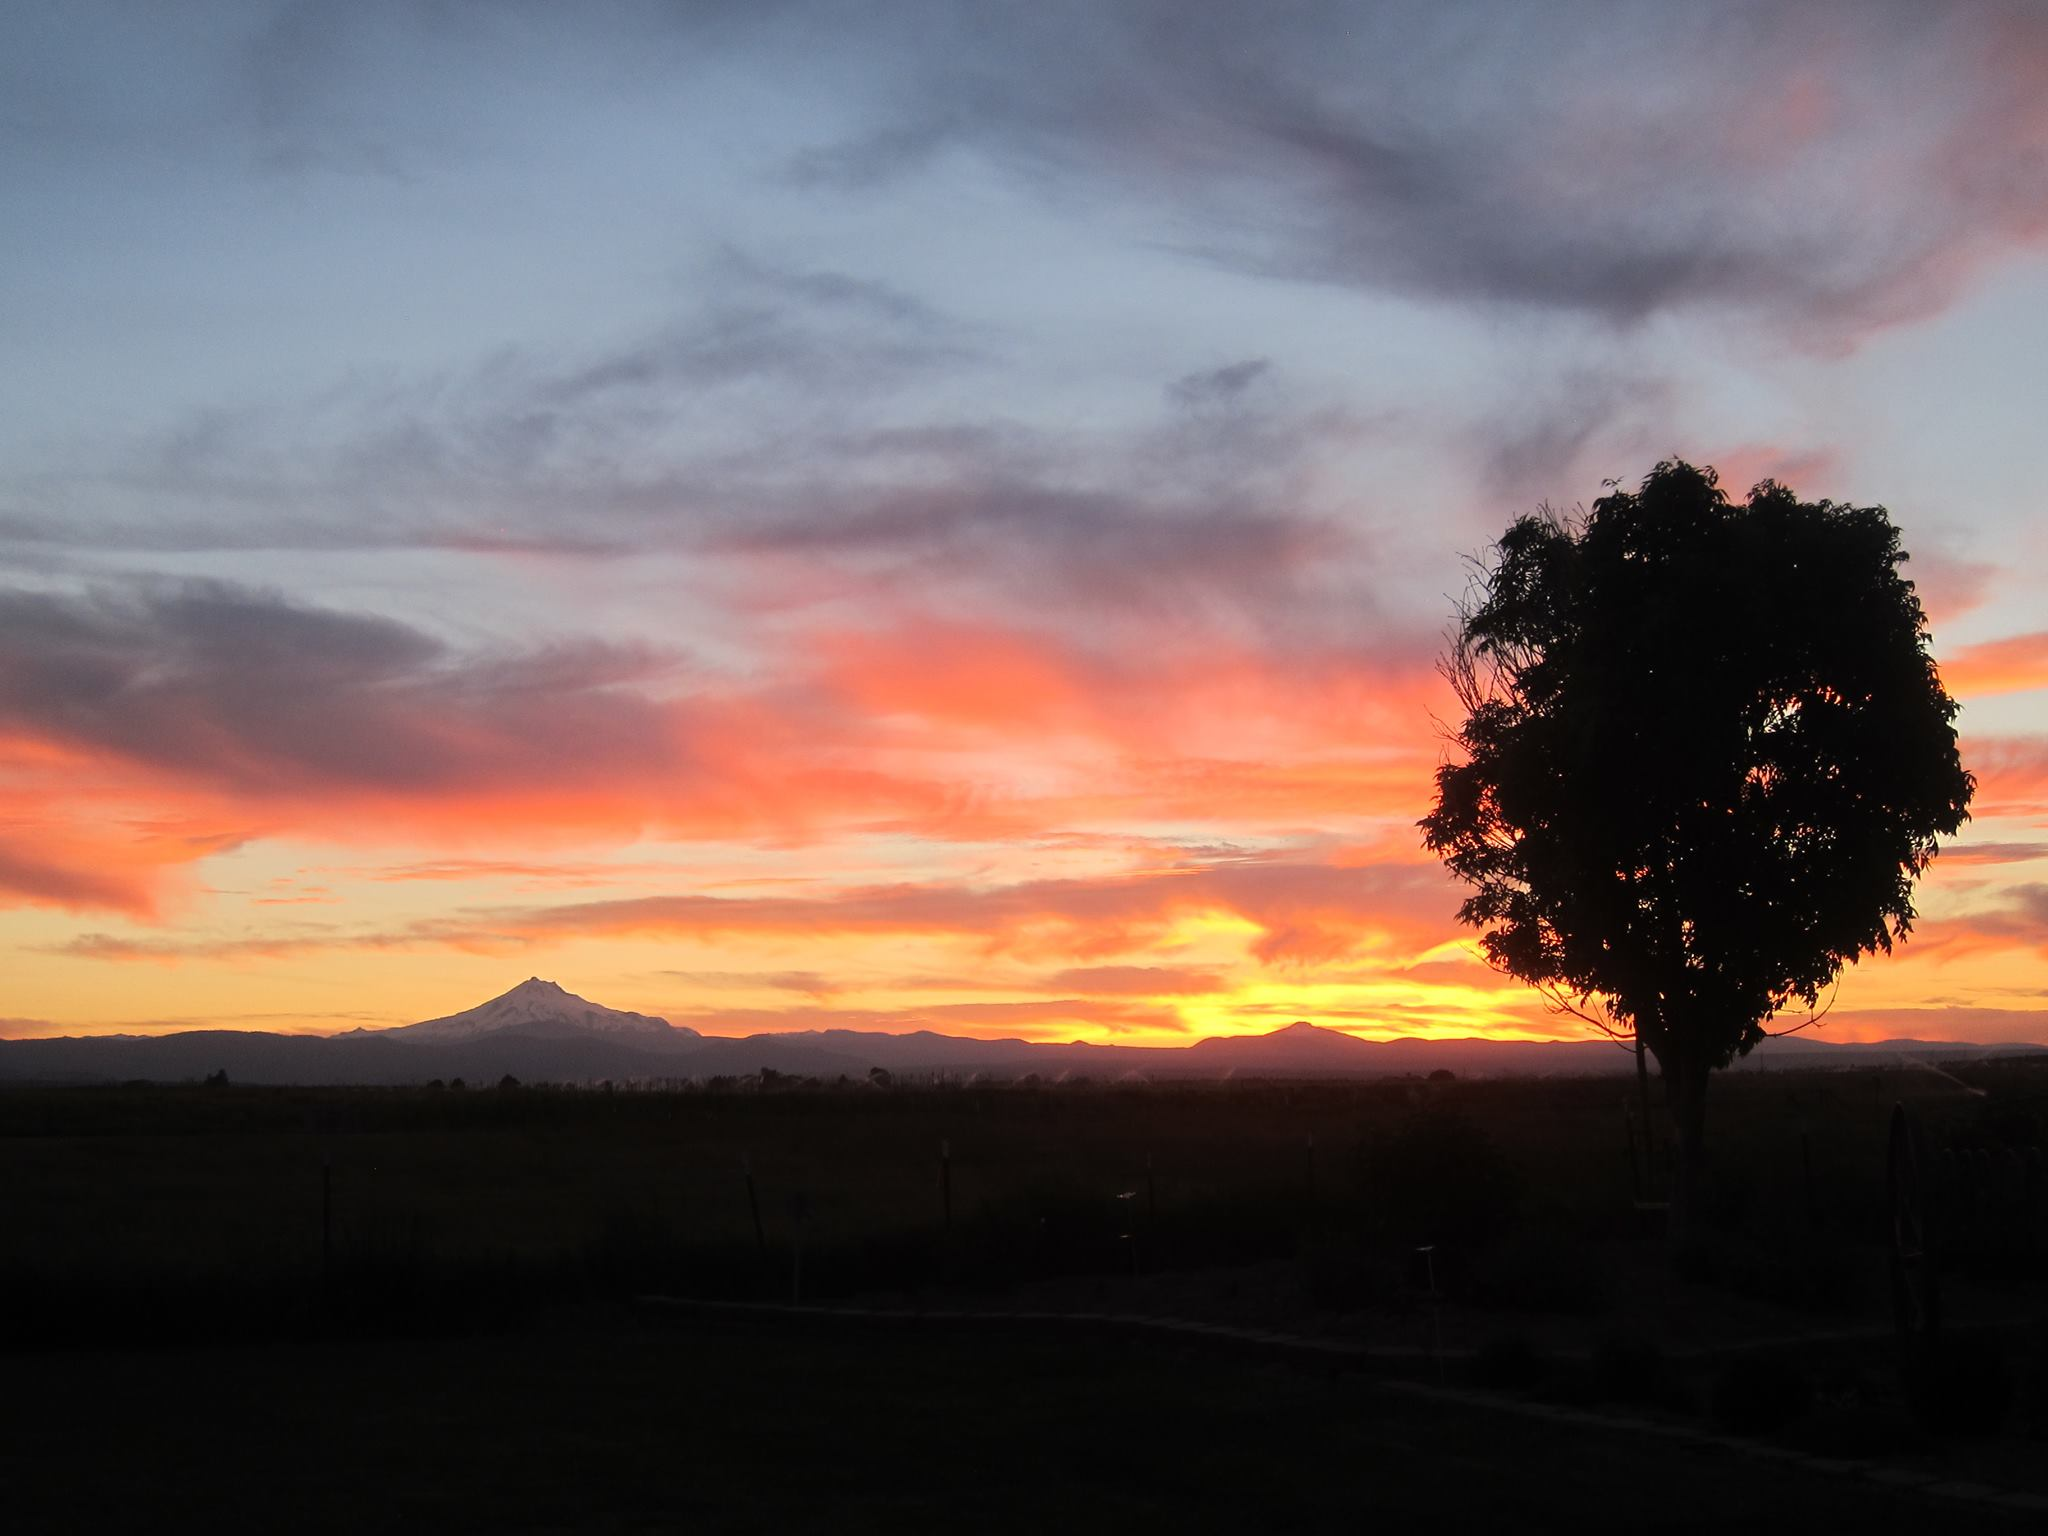 End to a great day- sunset from Lola and Mark's home, Mt Jefferson